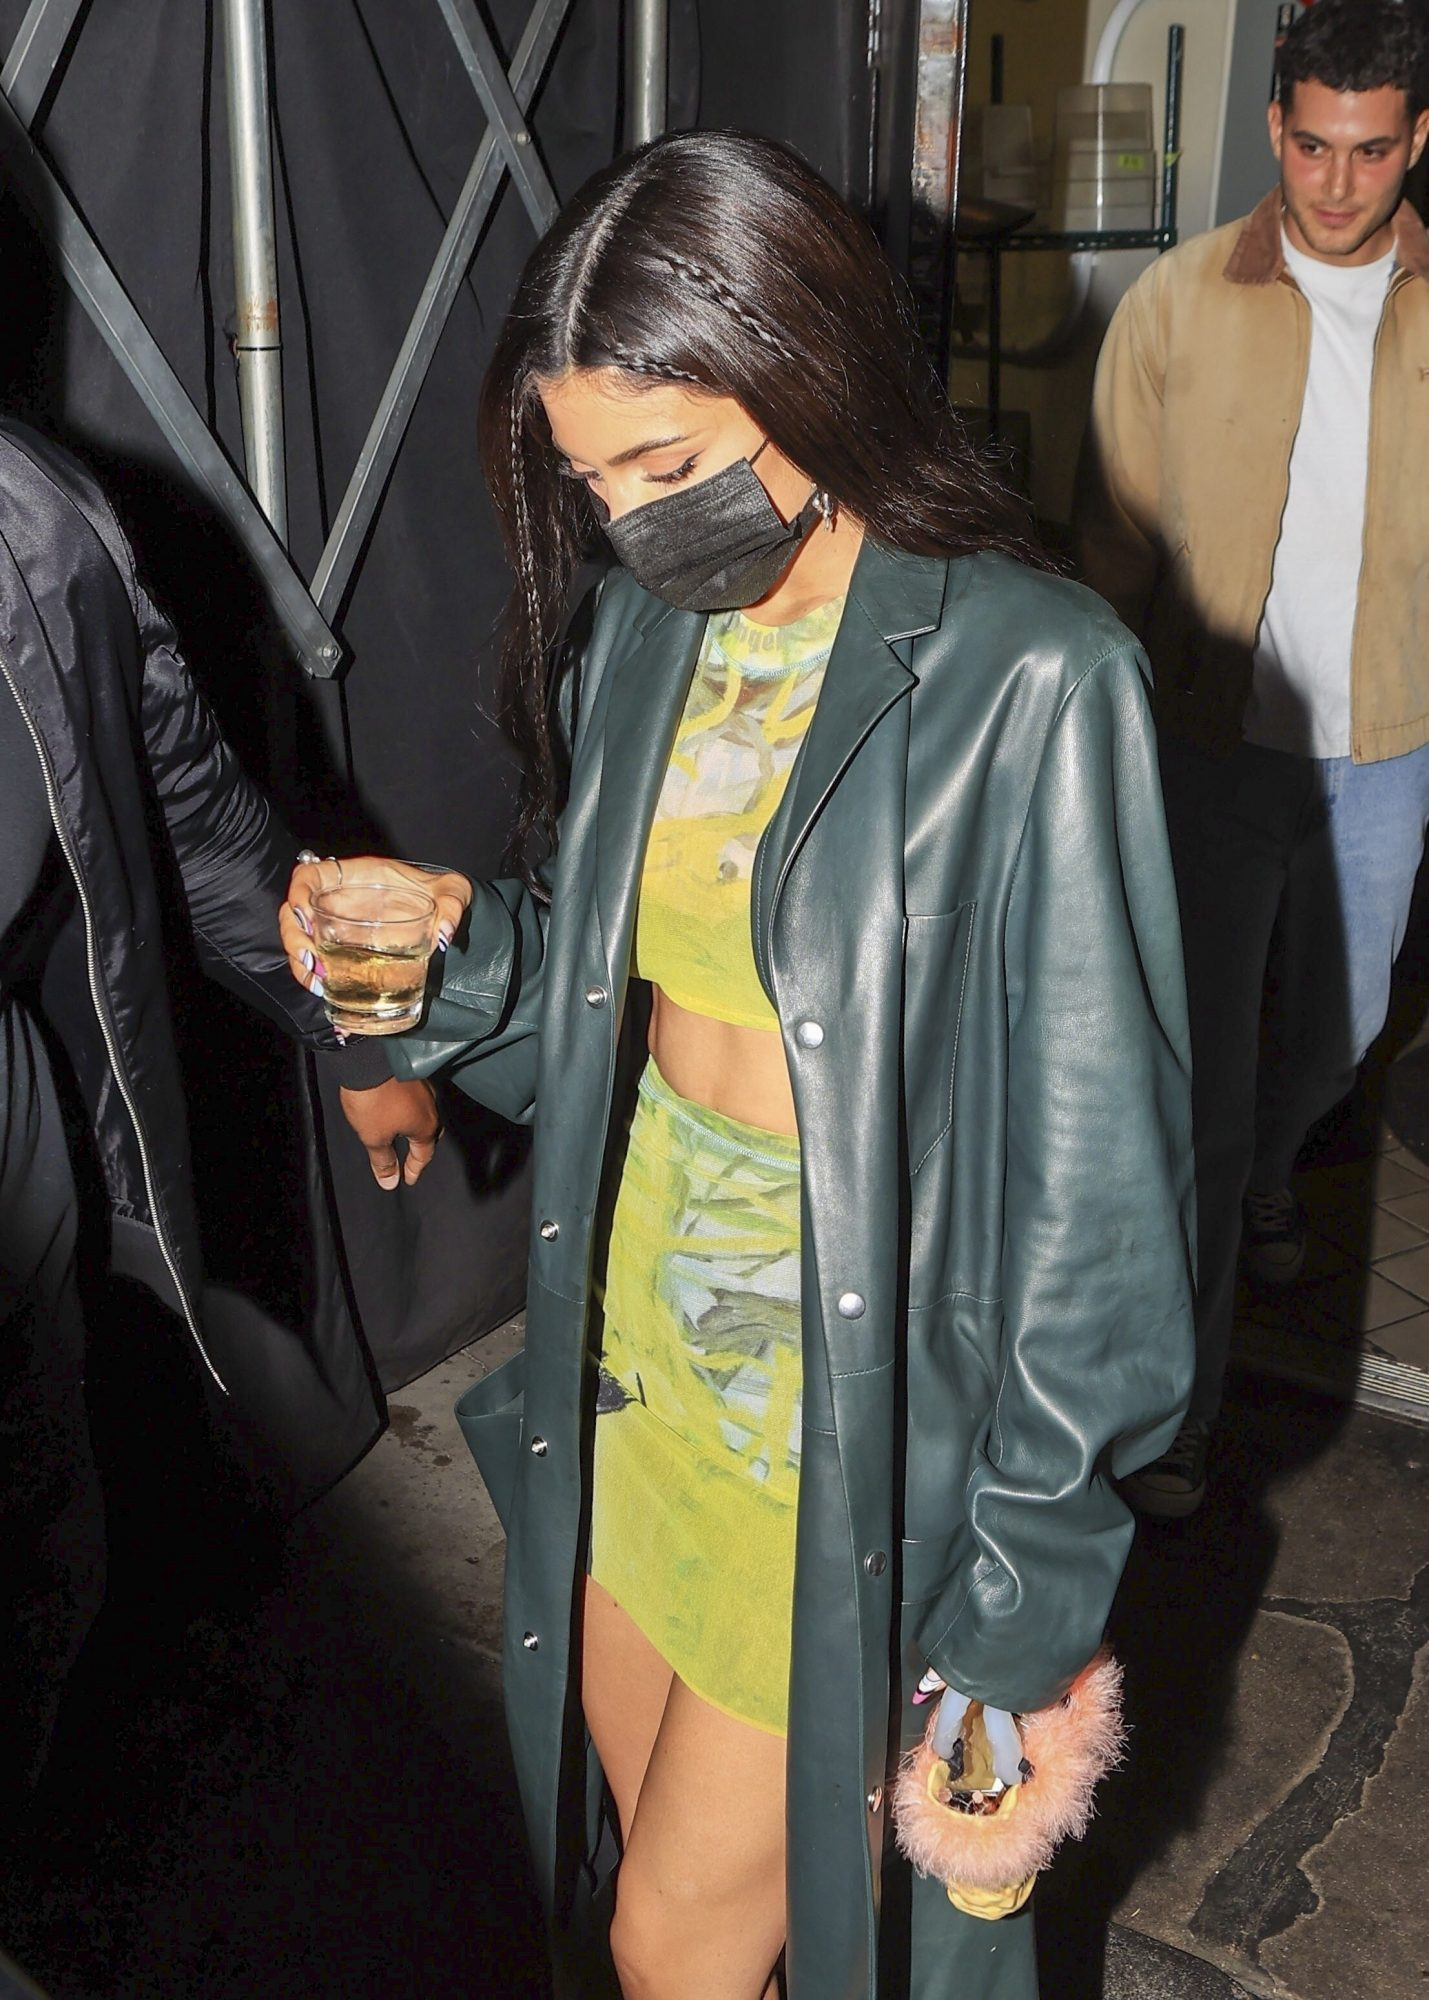 Kylie Jenner Carries a Shot of Tequila while leaving The Nice Guy